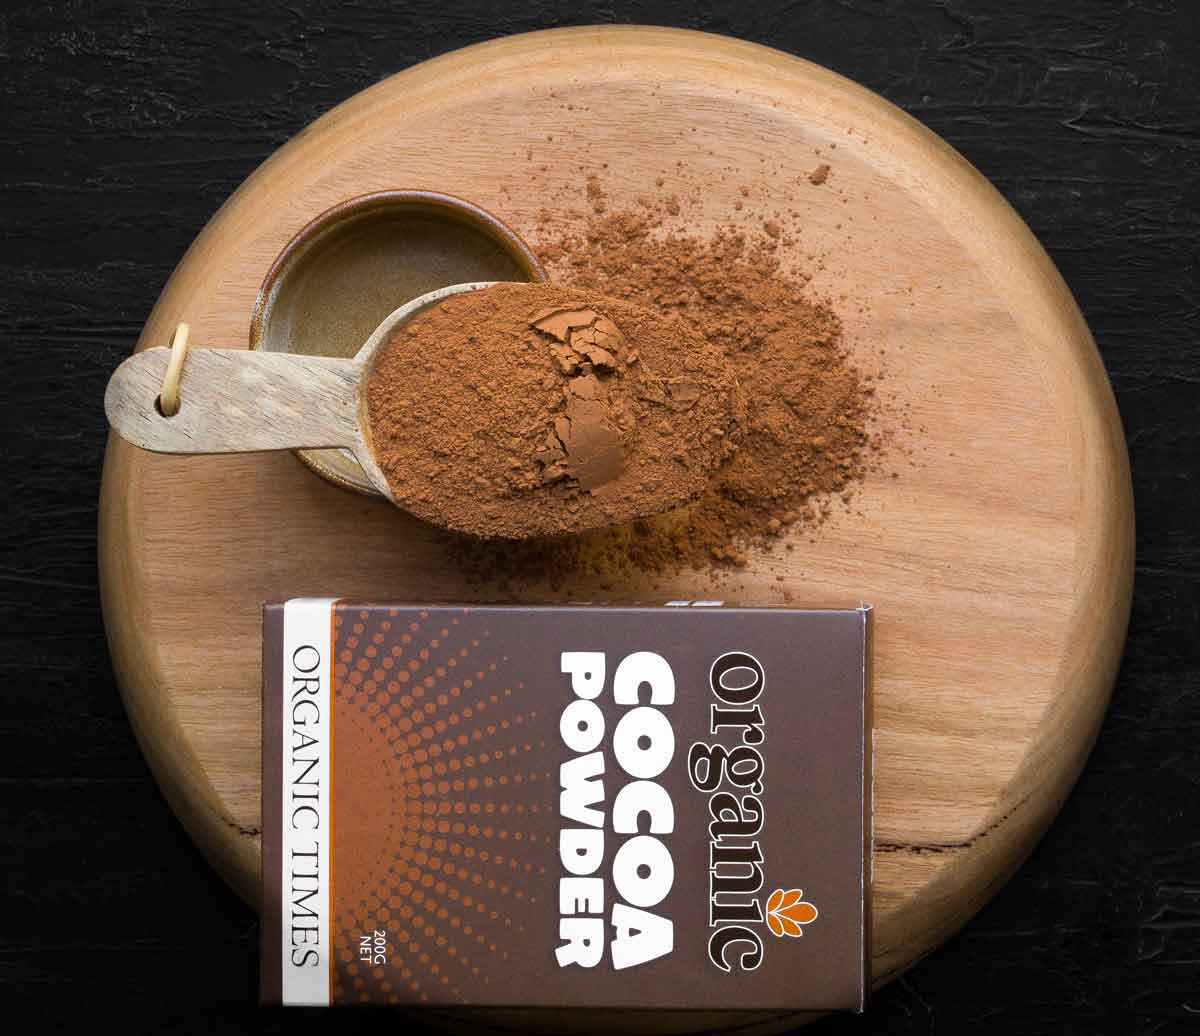 A spoon of Organic Times Cocoa Powder with packaging on the side